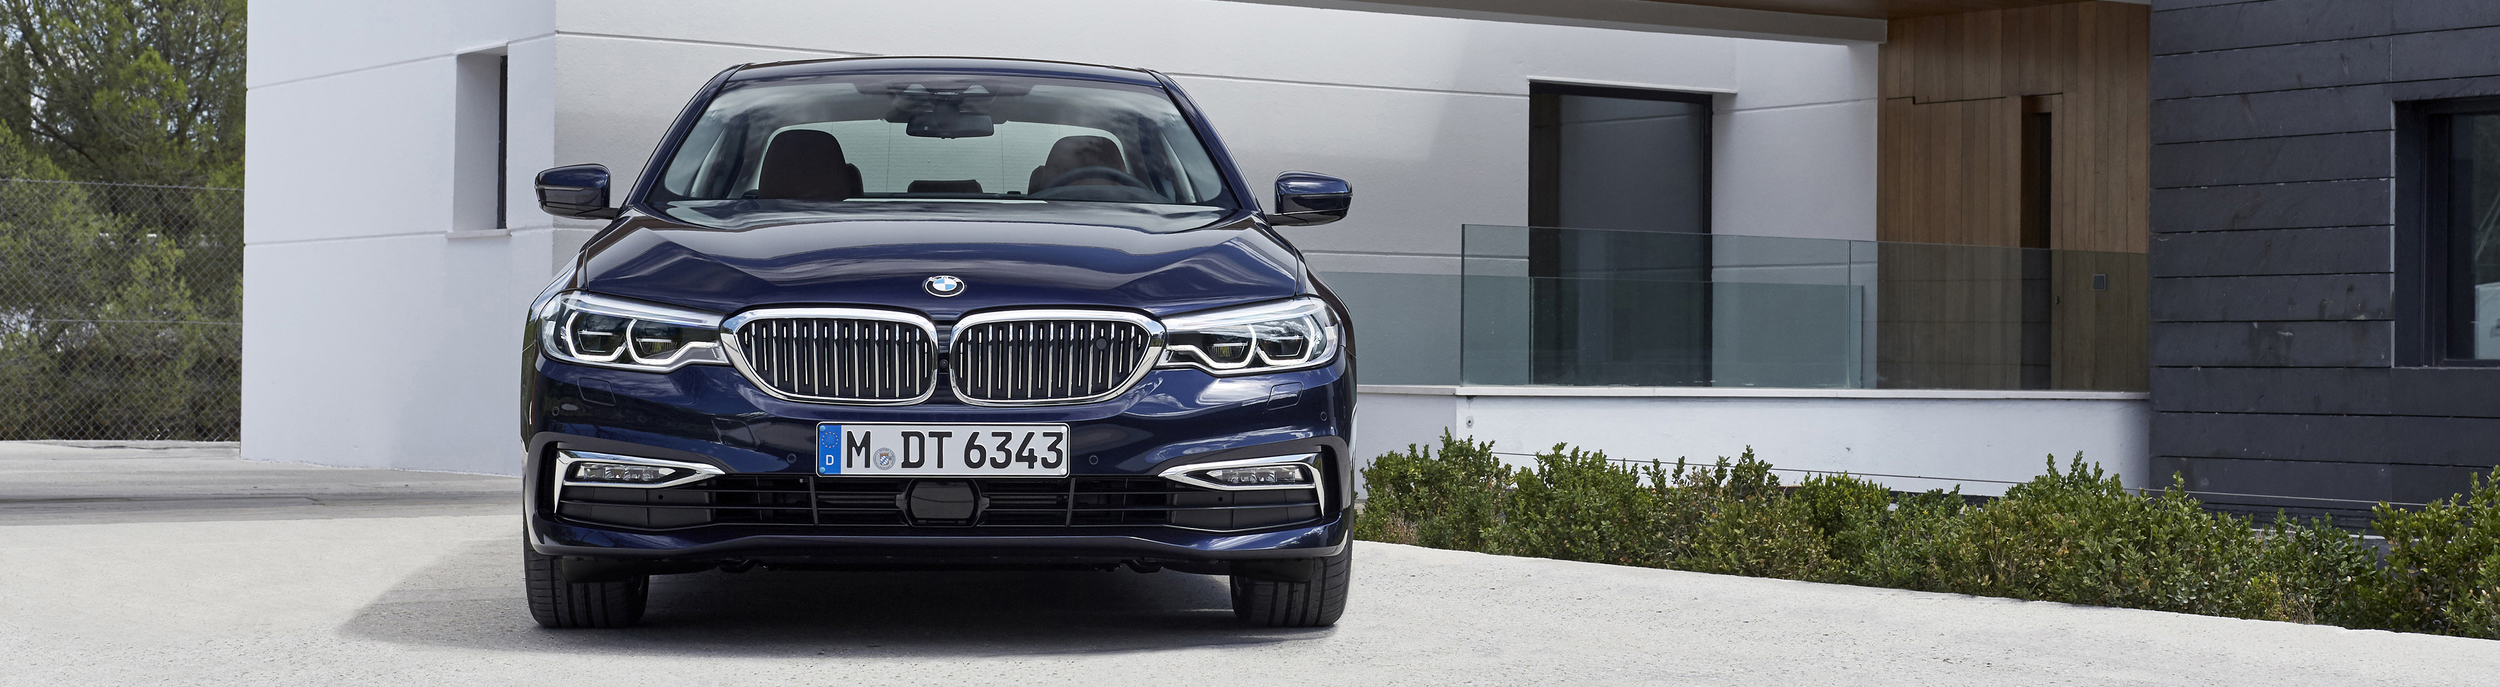 The All New 5 Series Braman Bmw West Palm Beach